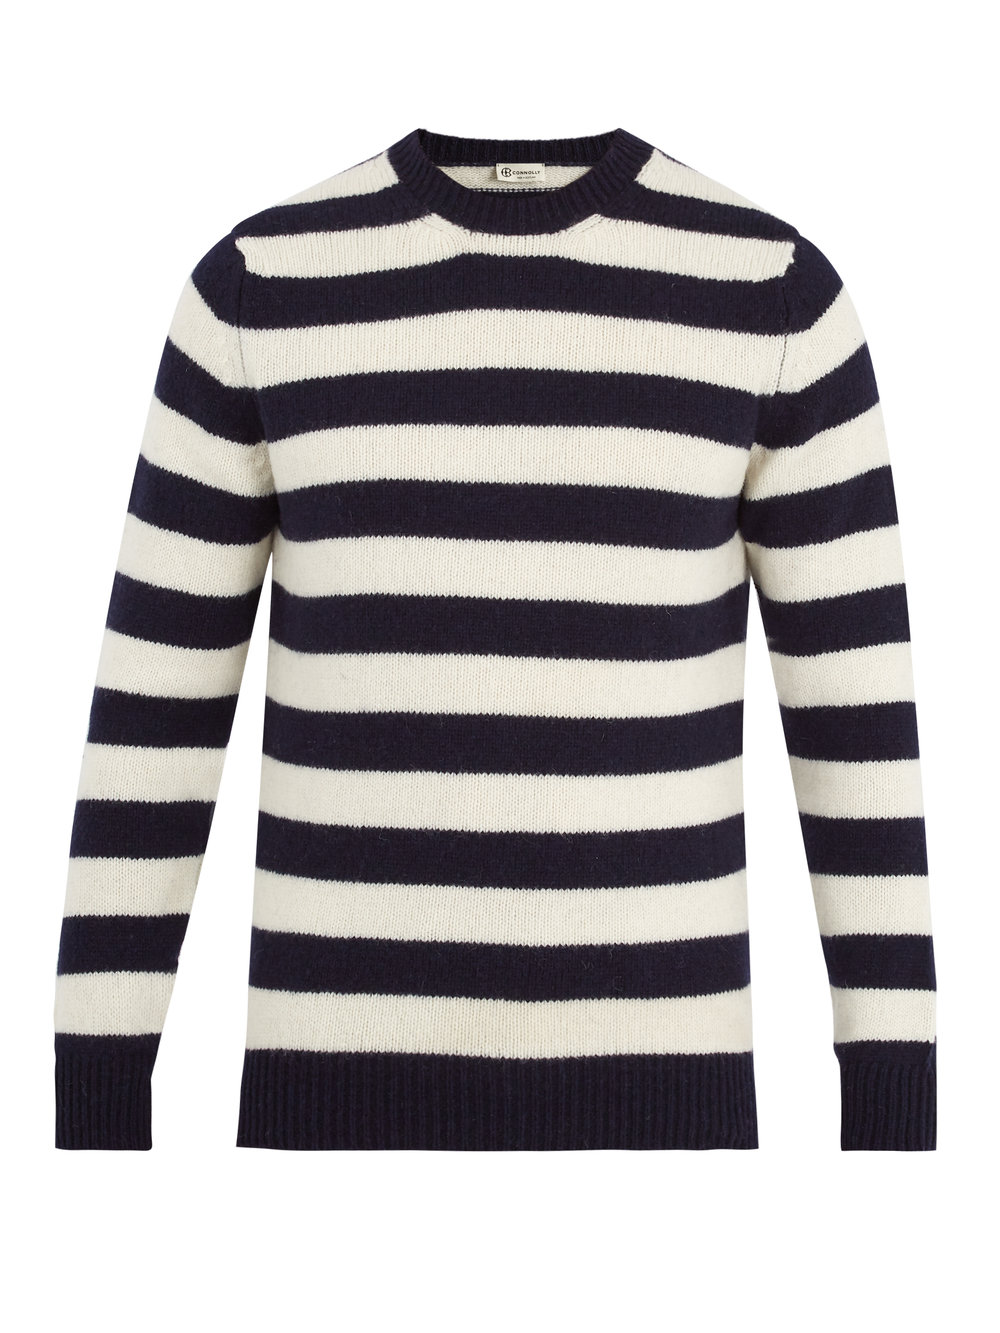 7. Connolly sweater at MATCHESFASHION.COM.Jpeg